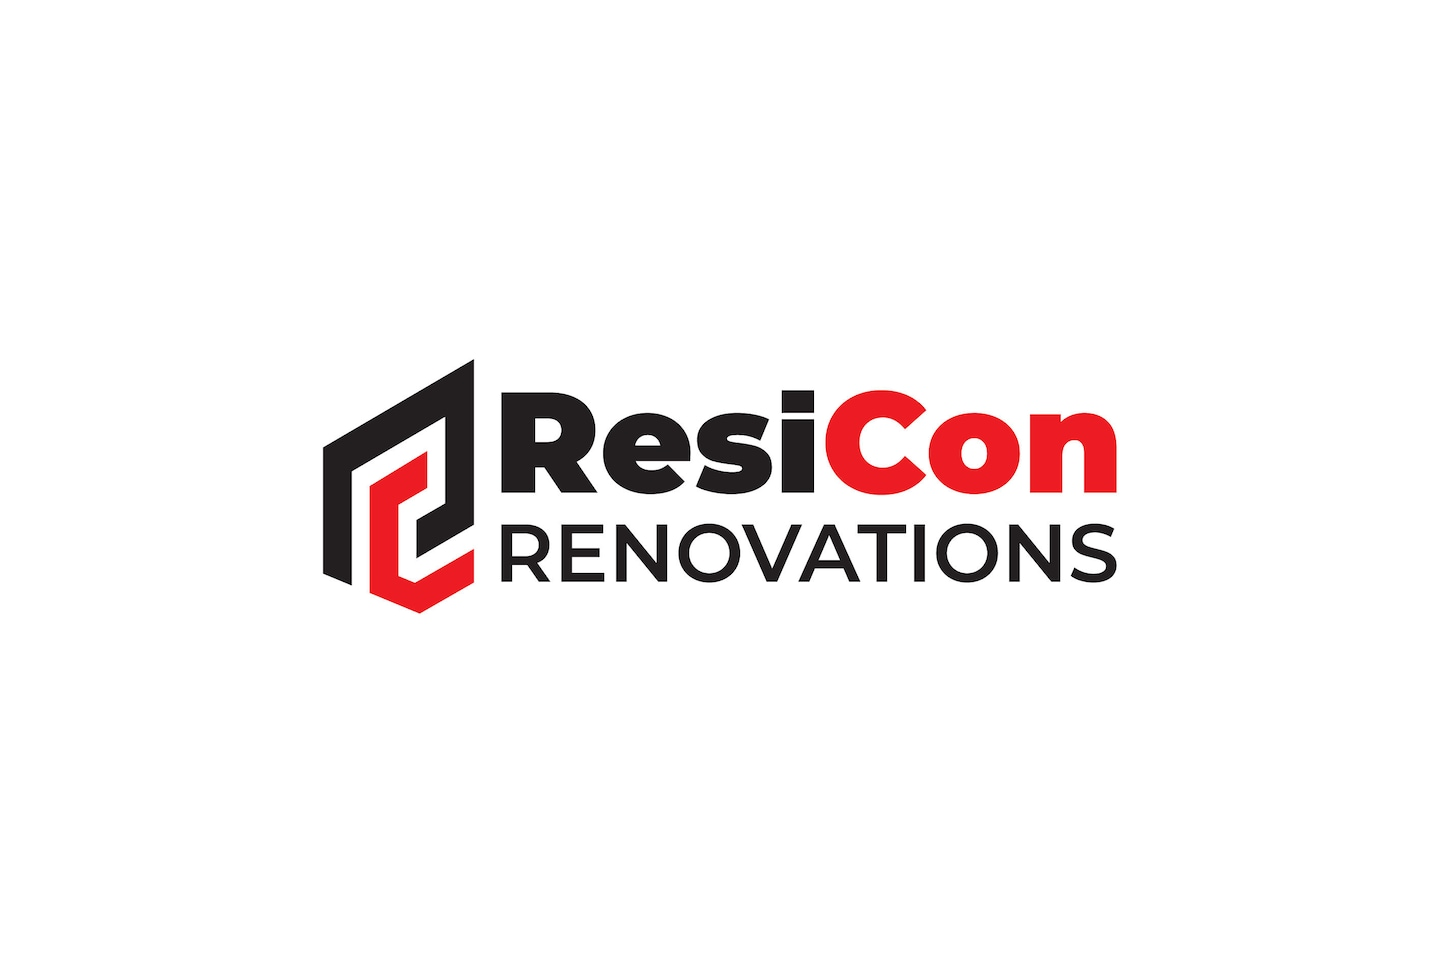 Resicon Renovations